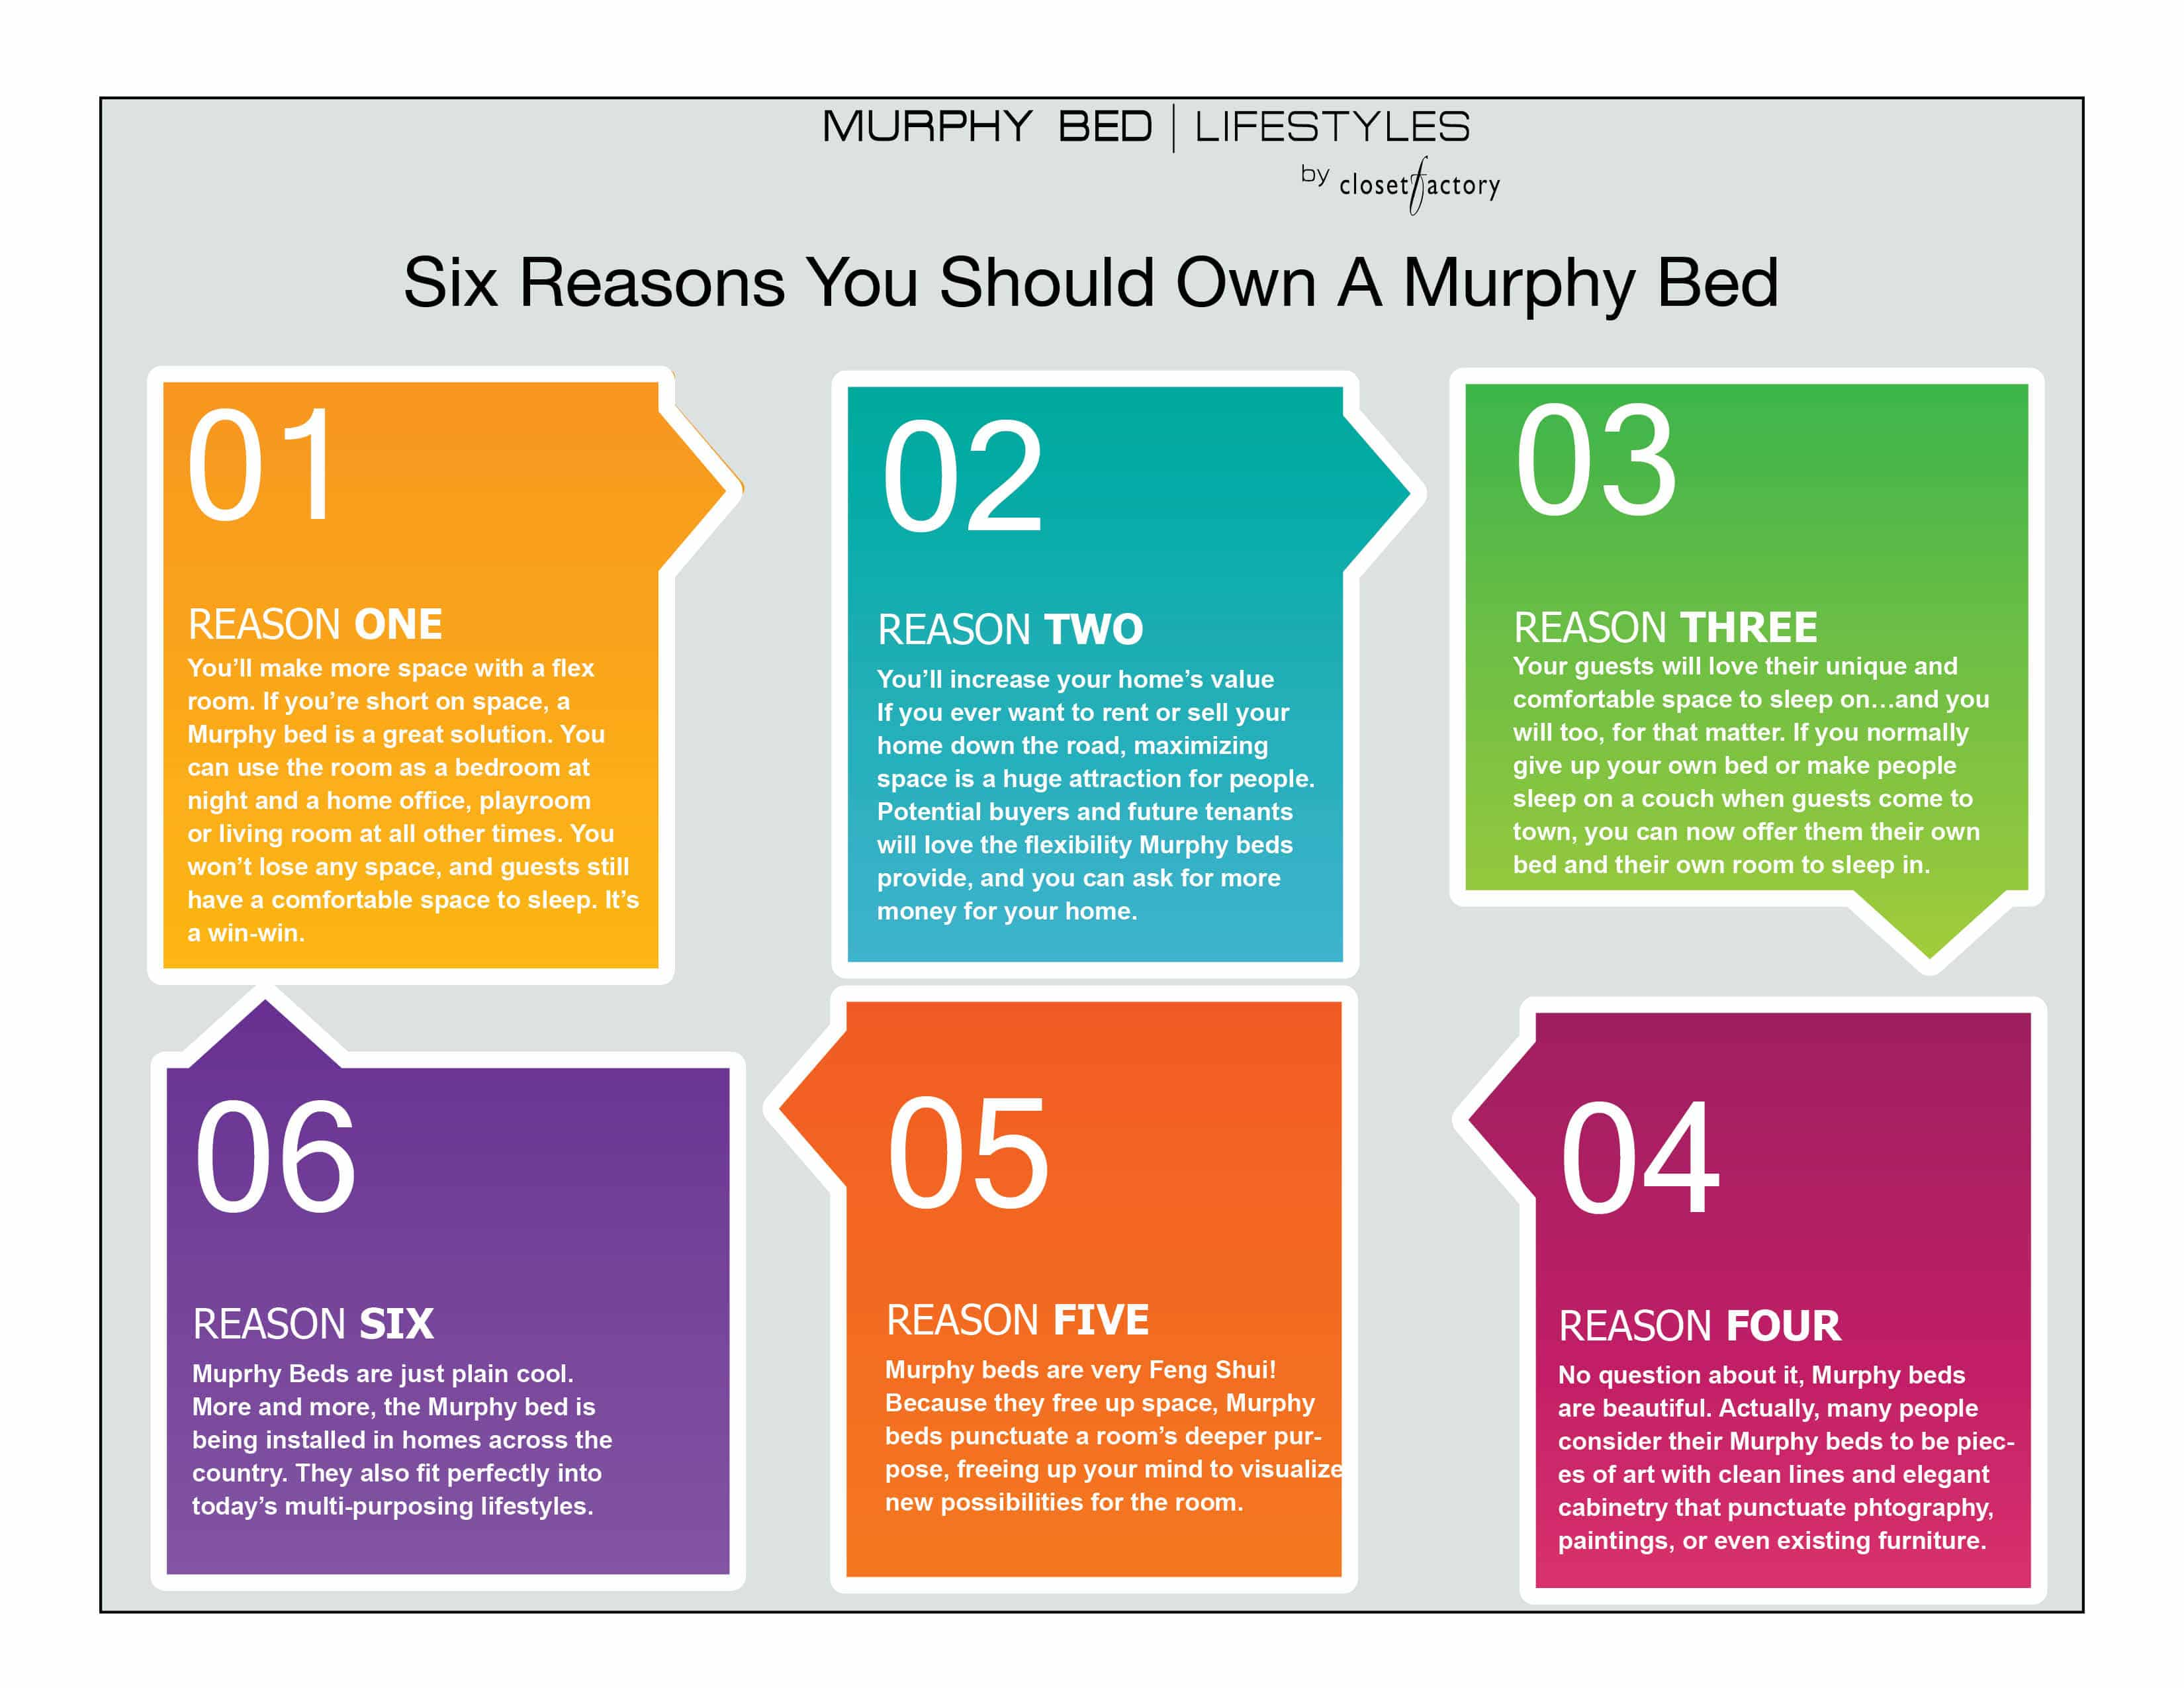 These are six good reasons for owning a Murphy bed